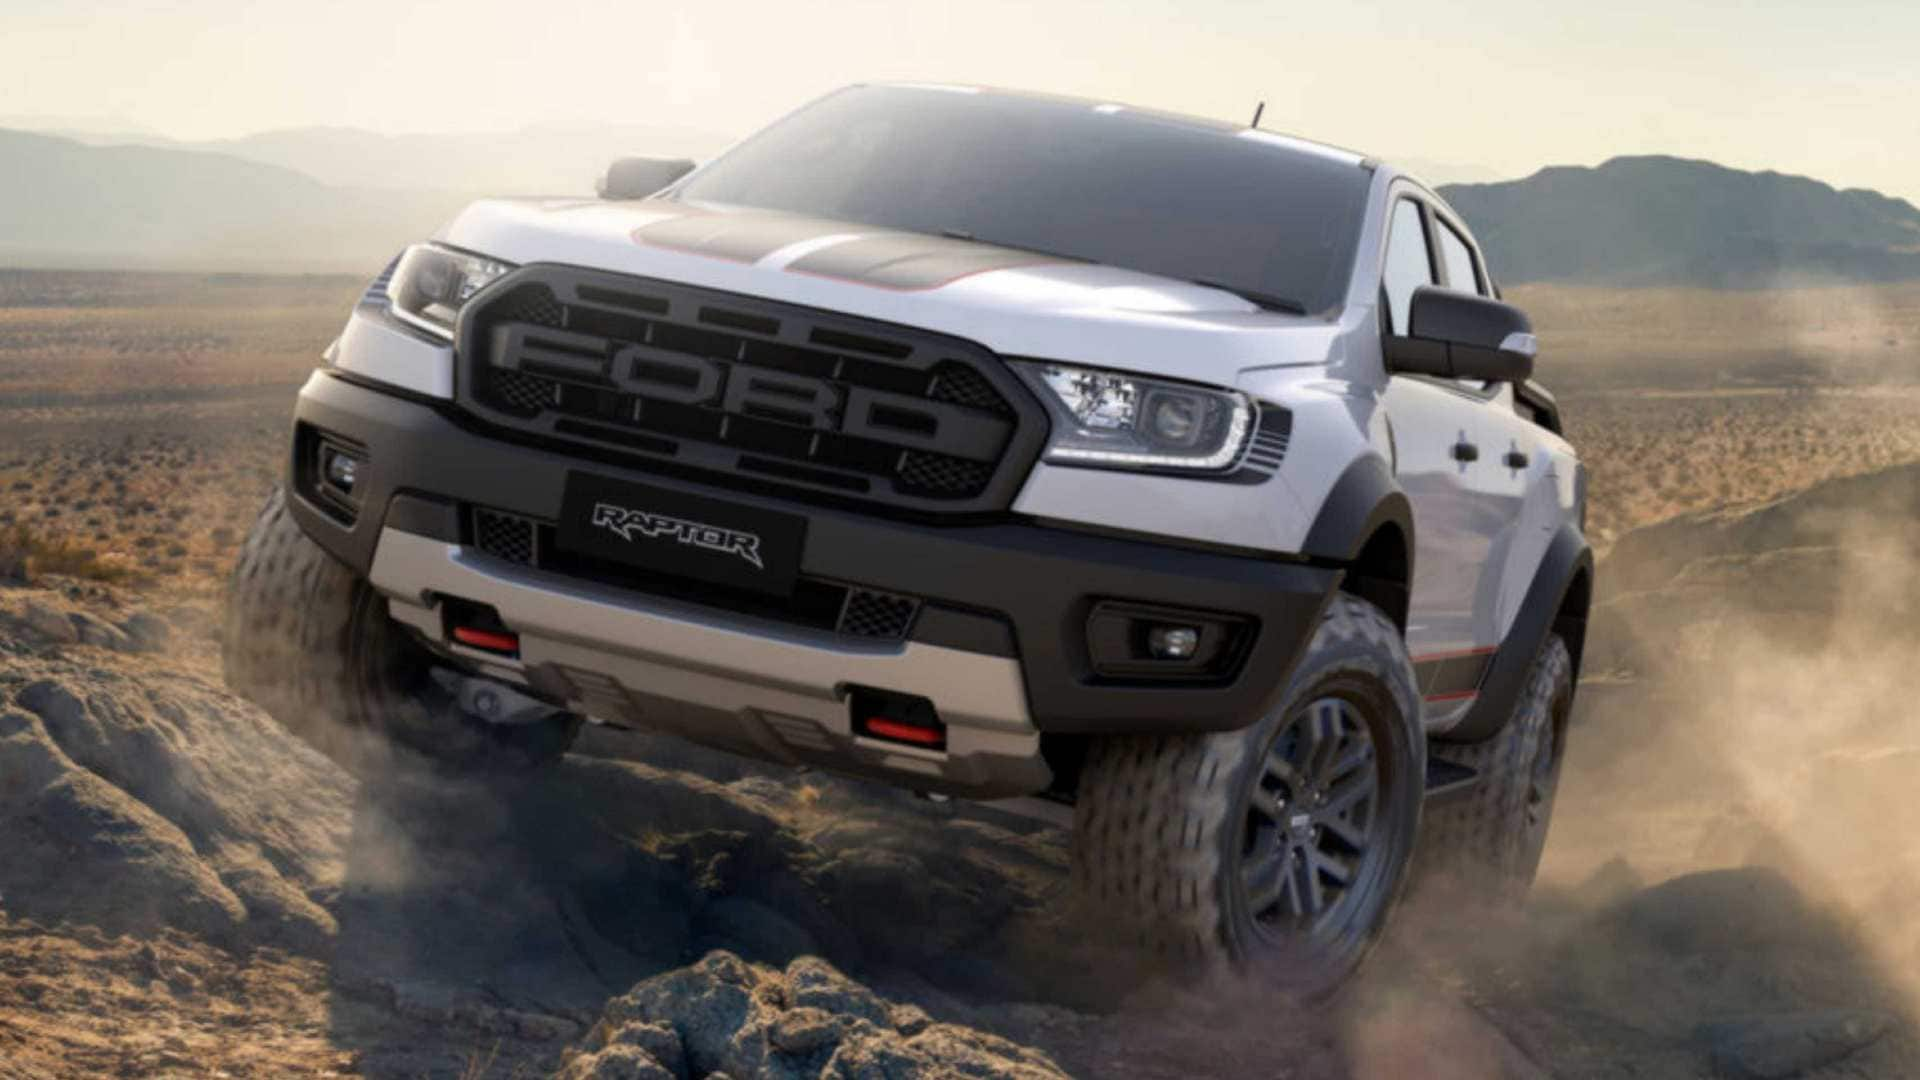 Ford Ranger Raptor X pick-up truck revealed, features cosmetic additions inside and out- Technology News, Gadgetclock